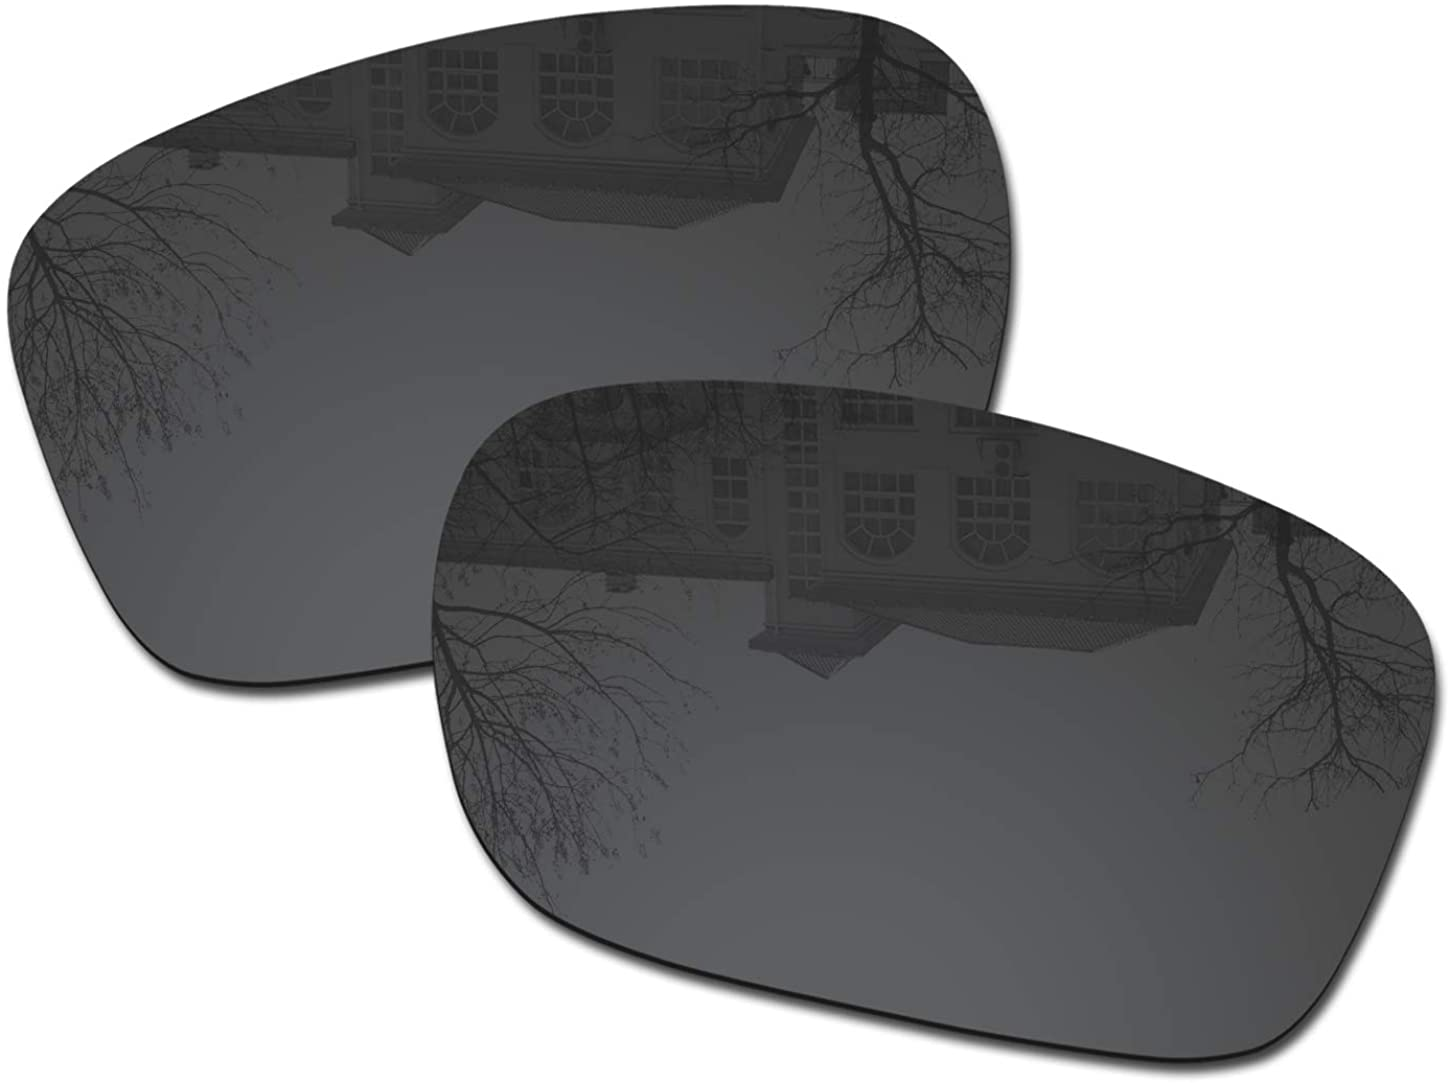 Millersawp Holbrook OO9102 Replacement Lenses Compatible with Oakley Sunglass